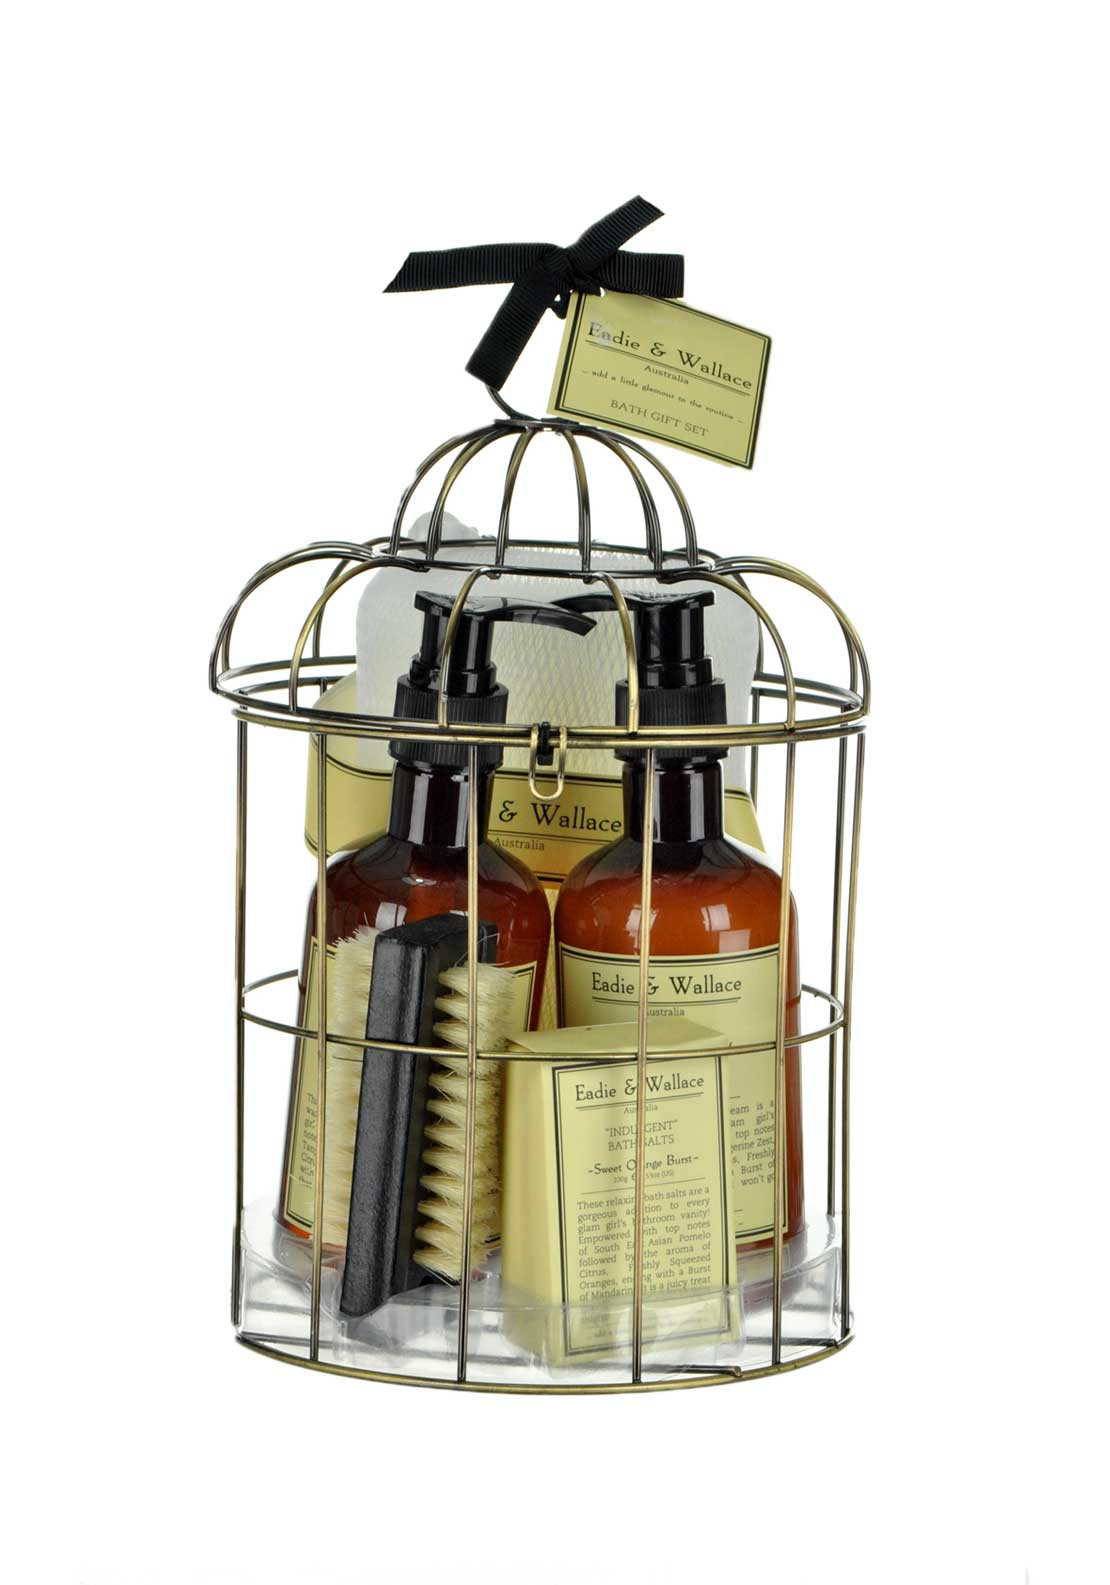 Eadie & Wallace Indulgent Caged Bath Gift Set, Sweet Orange Burst